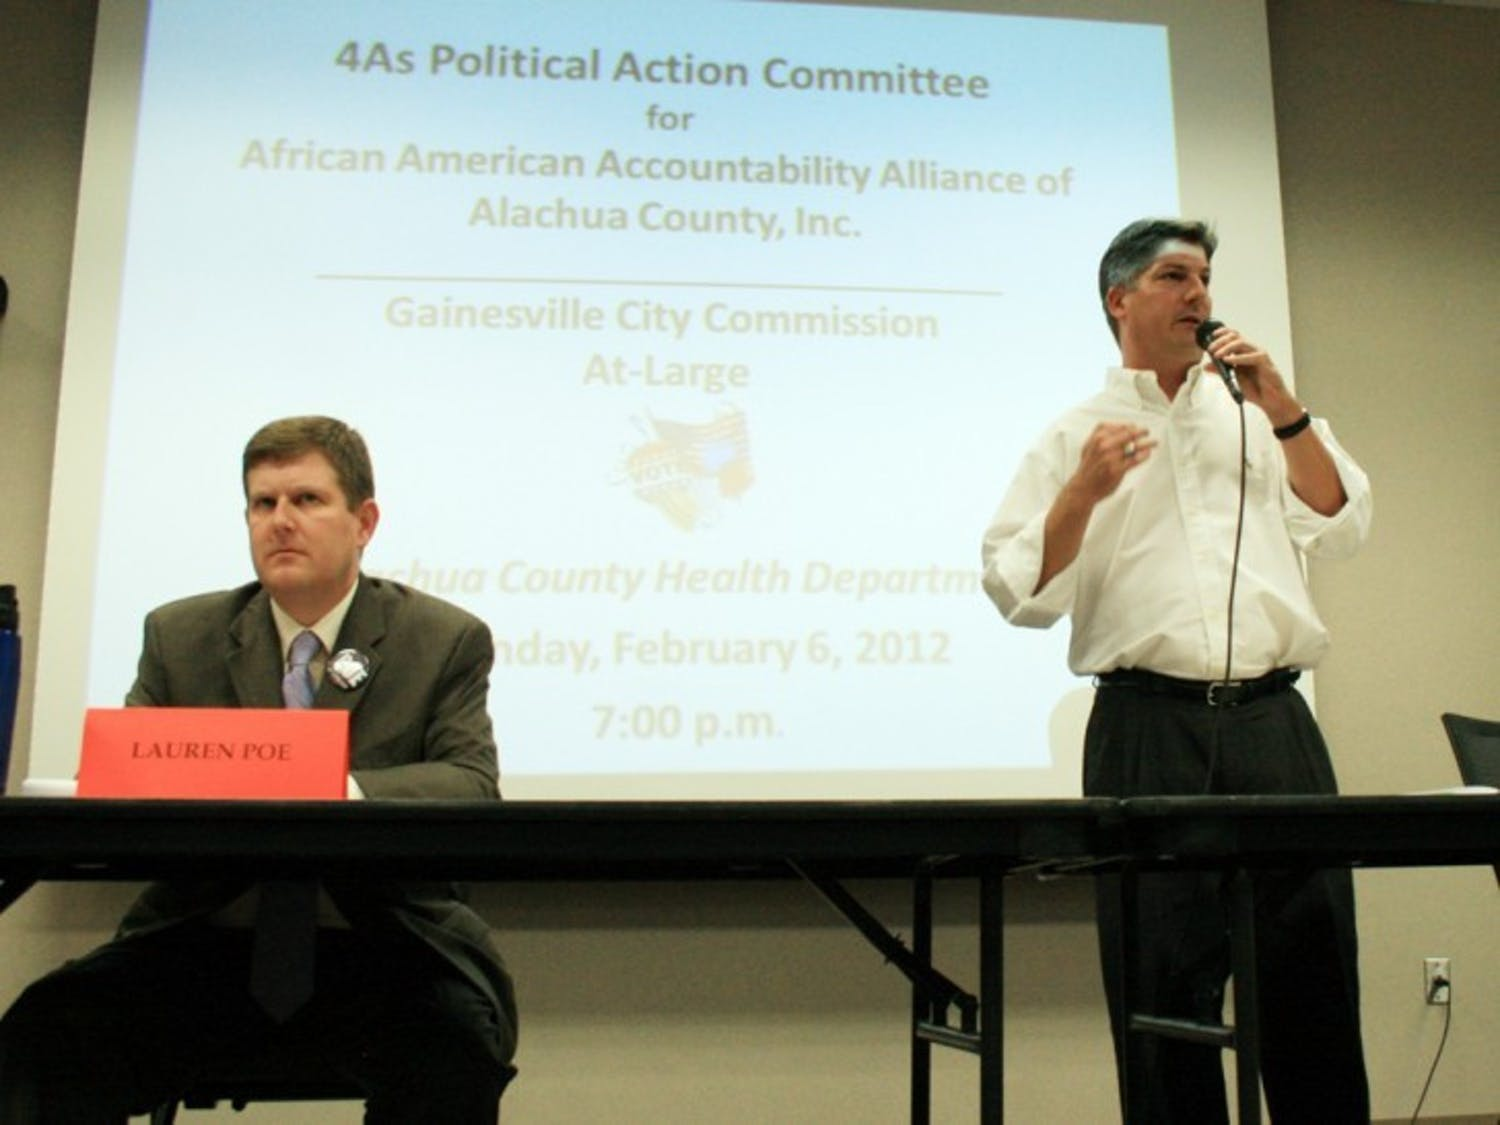 Lauren Poe and Nathan Skop, Gainesville City Commission at-large 1 candidates, answer questions posed by the African American Accountability Alliance of Alachua County at the Alachua County Health Department on Monday night.